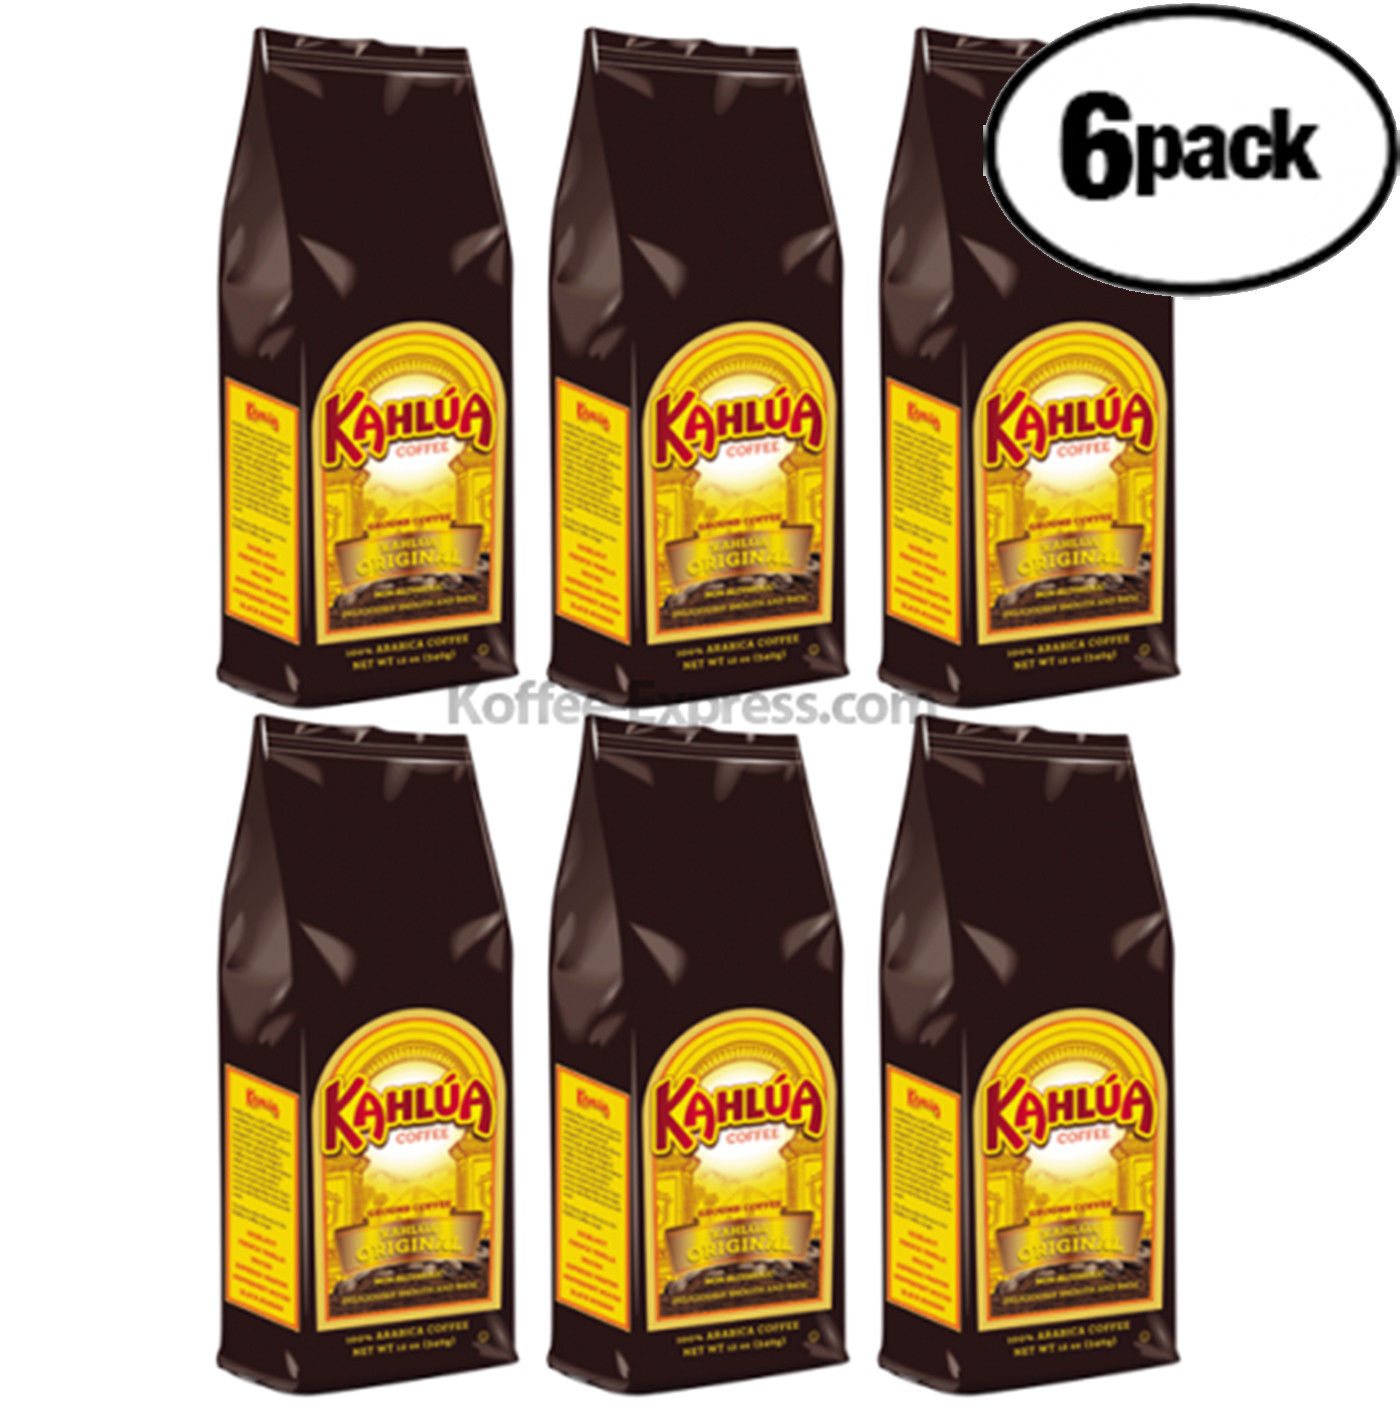 Kahlua Original Ground Coffee (6 bags/12 oz)